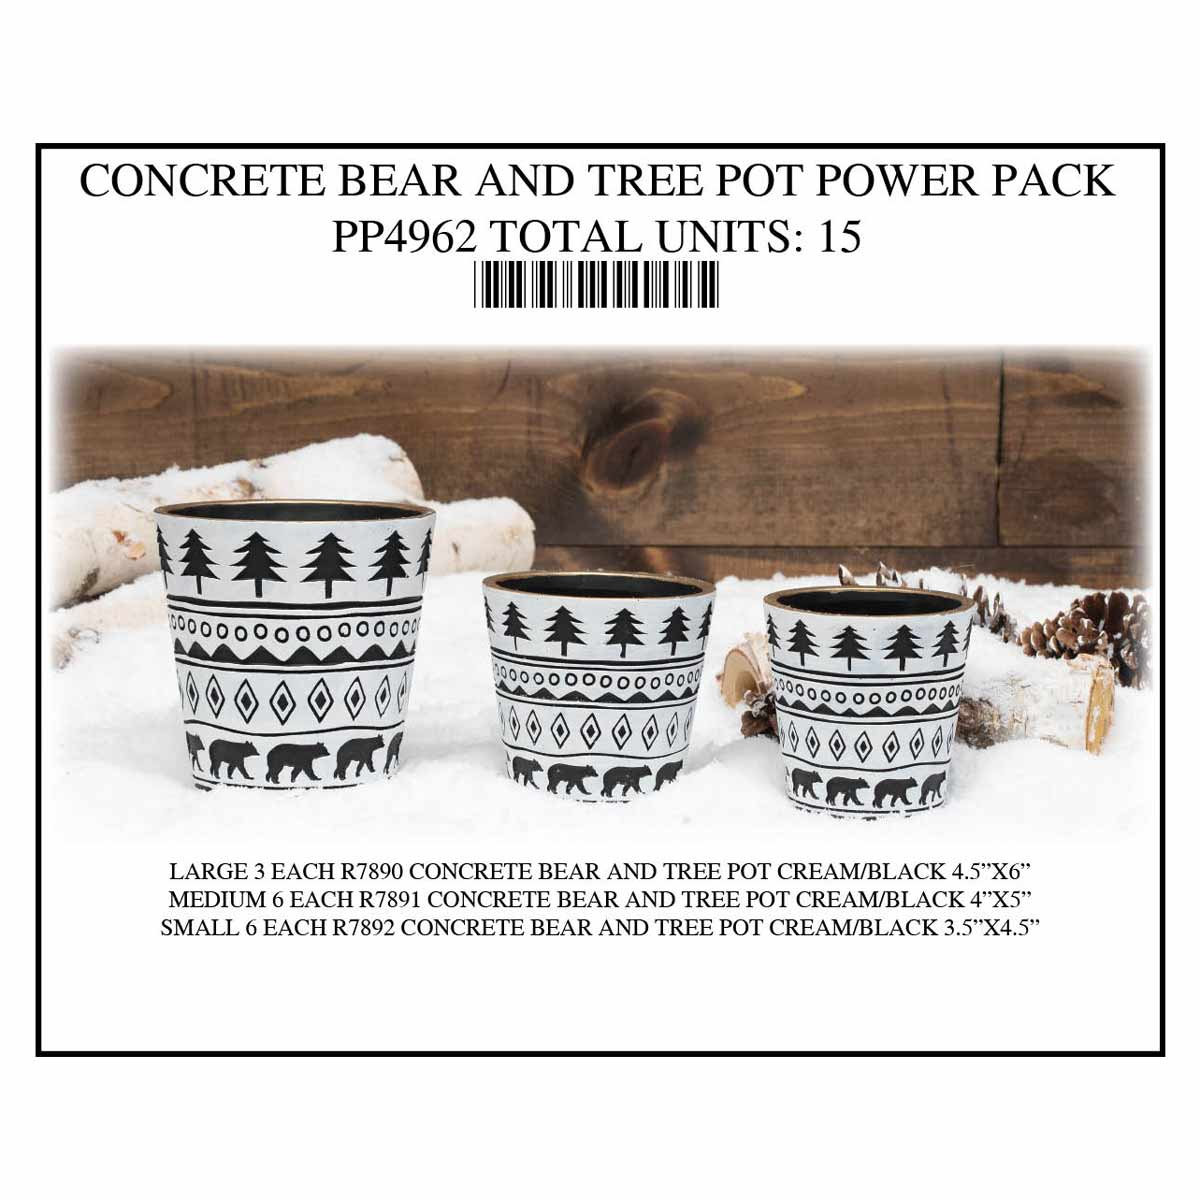 POT BEAR CREAM/BLACK POWER PACK 15 UNITS